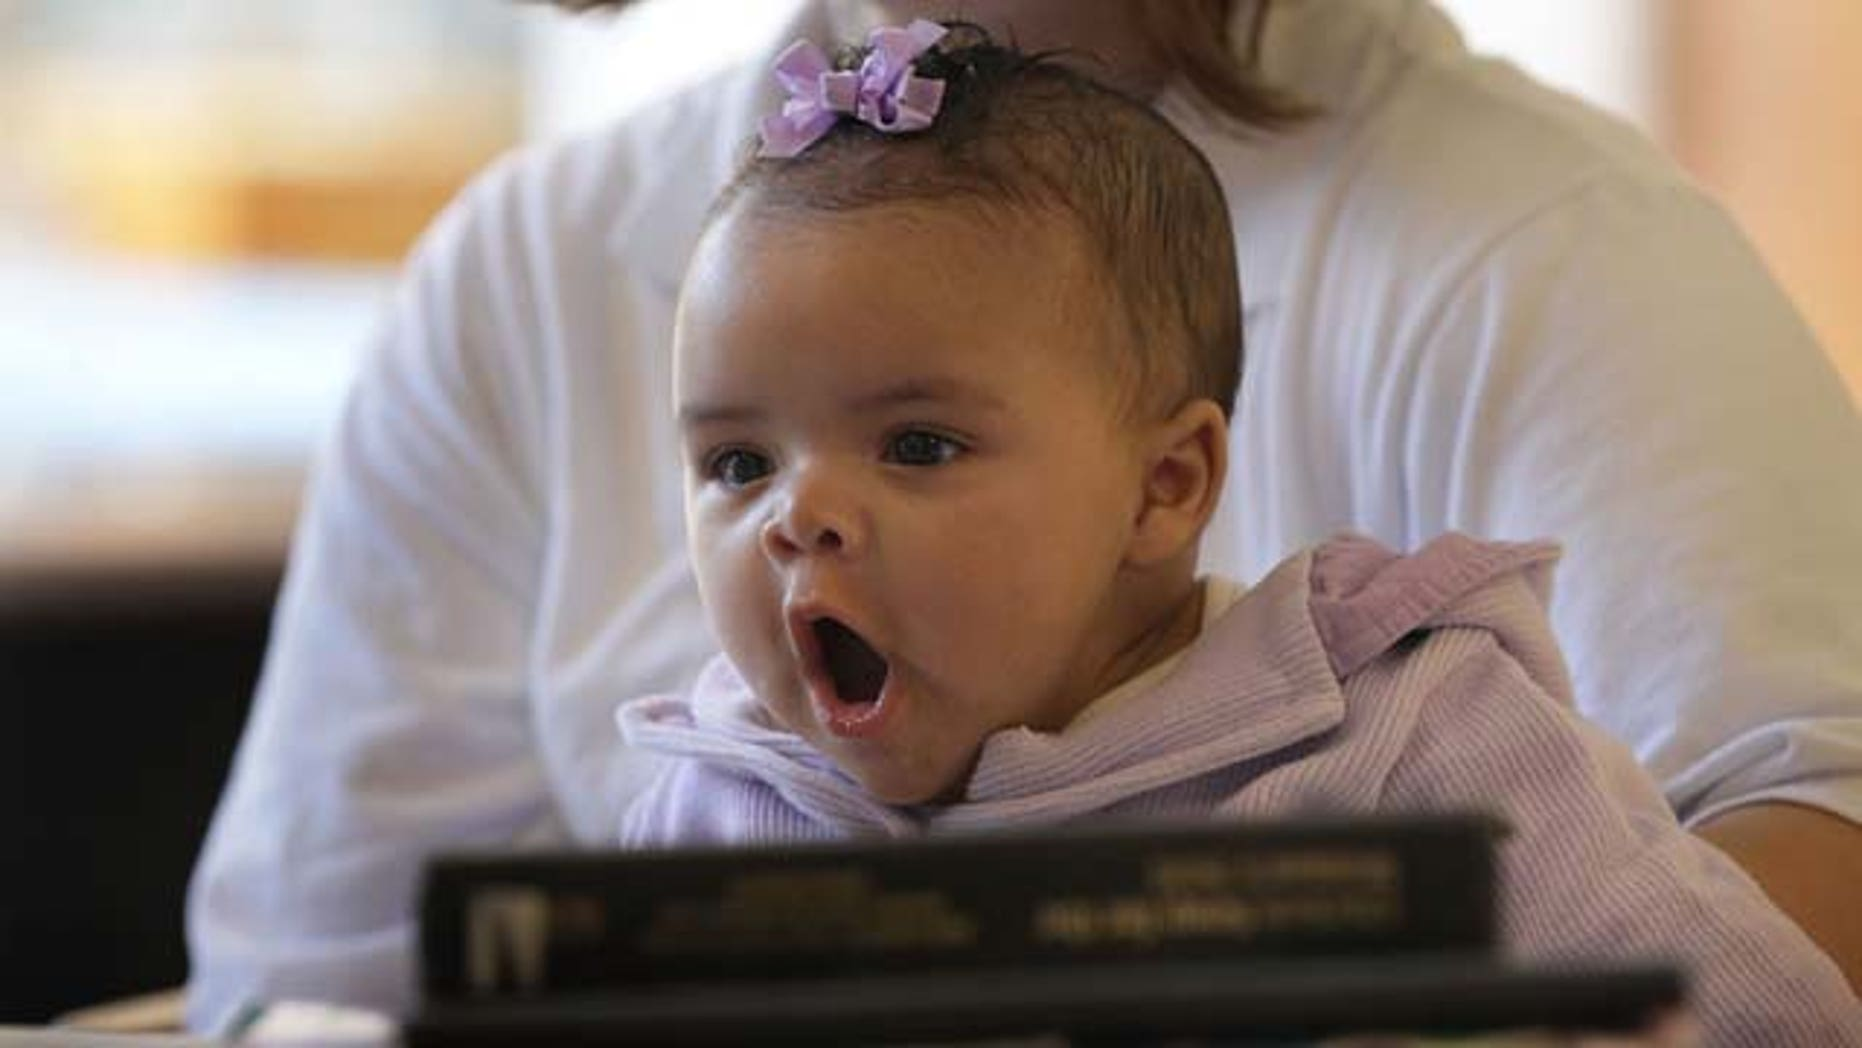 DECATUR, IL - FEBRUARY 18: Three-month-old  Alexis sits on her mother's lap in the common area of her ward at the Decatur Correctional Center February 18, 2011 in Decatur, Illinois. Alexis, who was born while her mother Brandi Ceci was serving a 54 month sentence for burglary, lives with her mother at the prison, part of the Moms with Babies program at the minimum security facility. The program allows incarcerated women to keep their newborn babies with them for up to two years while serving their sentence. The program boasts a zero percent recidivism rate compared to the statewide rate of 51.3 percent.  (Photo by Scott Olson/Getty Images)